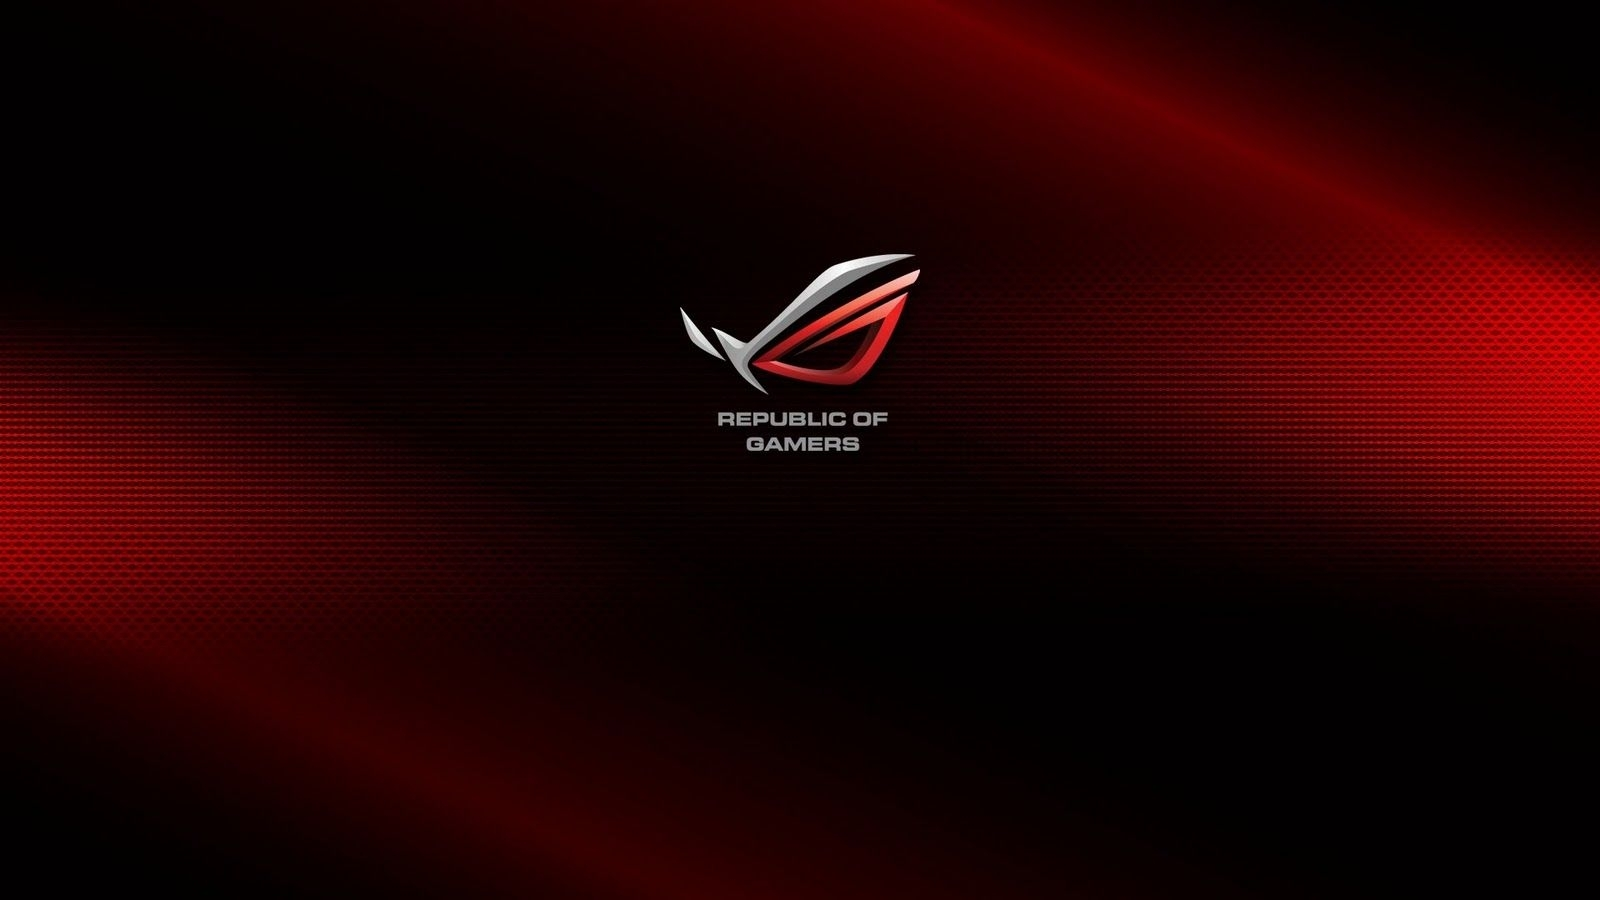 rog asus 4k uhd wallpaper | 유용함 | pinterest | ordinateurs